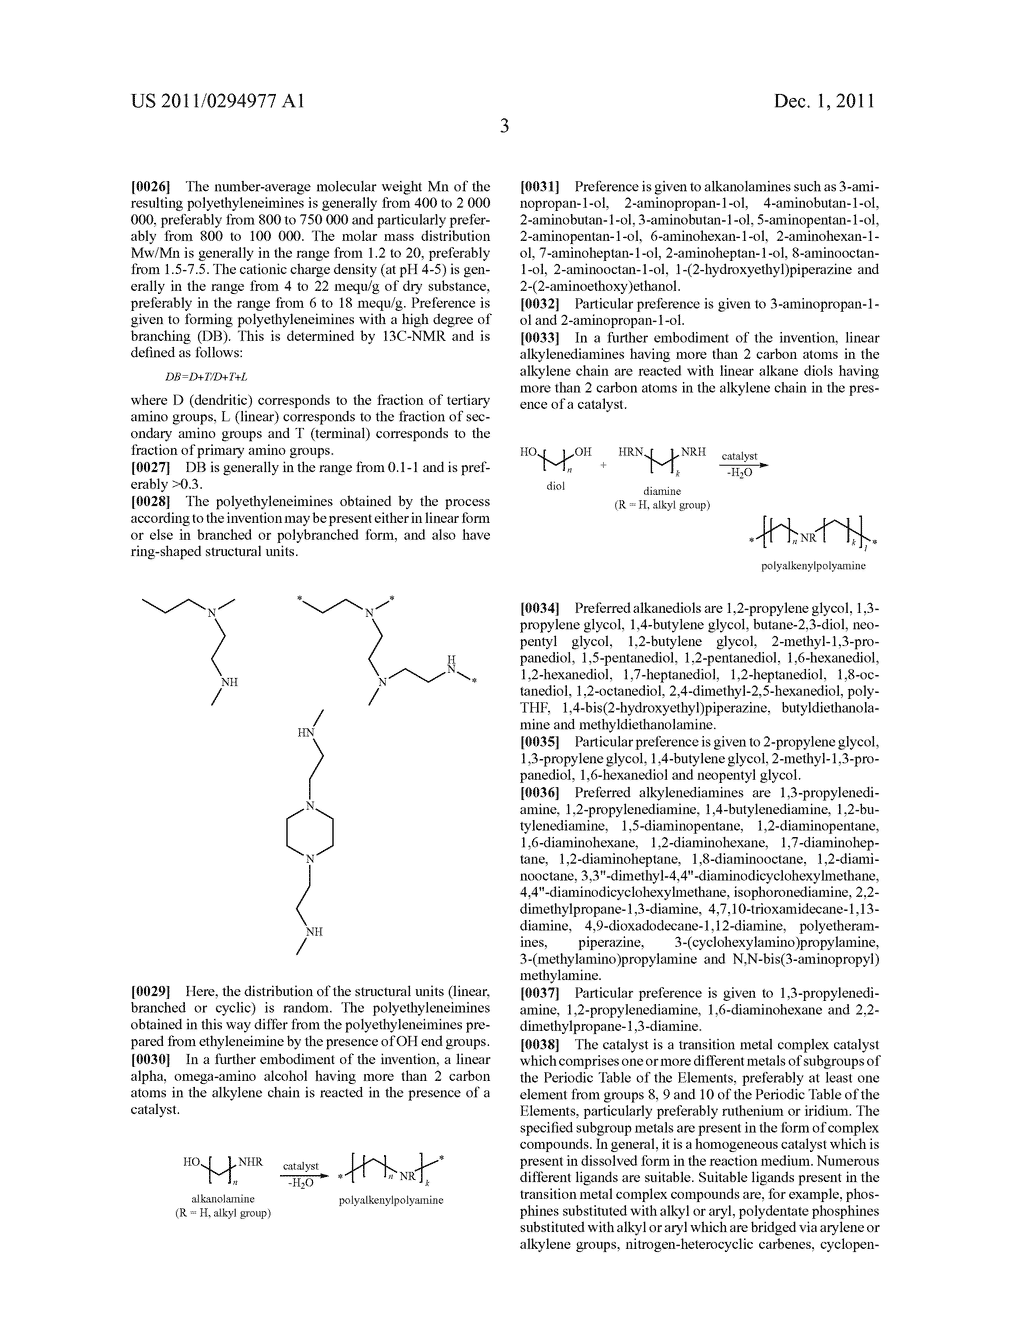 POLYALKYLENEPOLYAMINES BY HOMOGENEOUSLY CATALYZED ALCOHOL AMINATION - diagram, schematic, and image 04